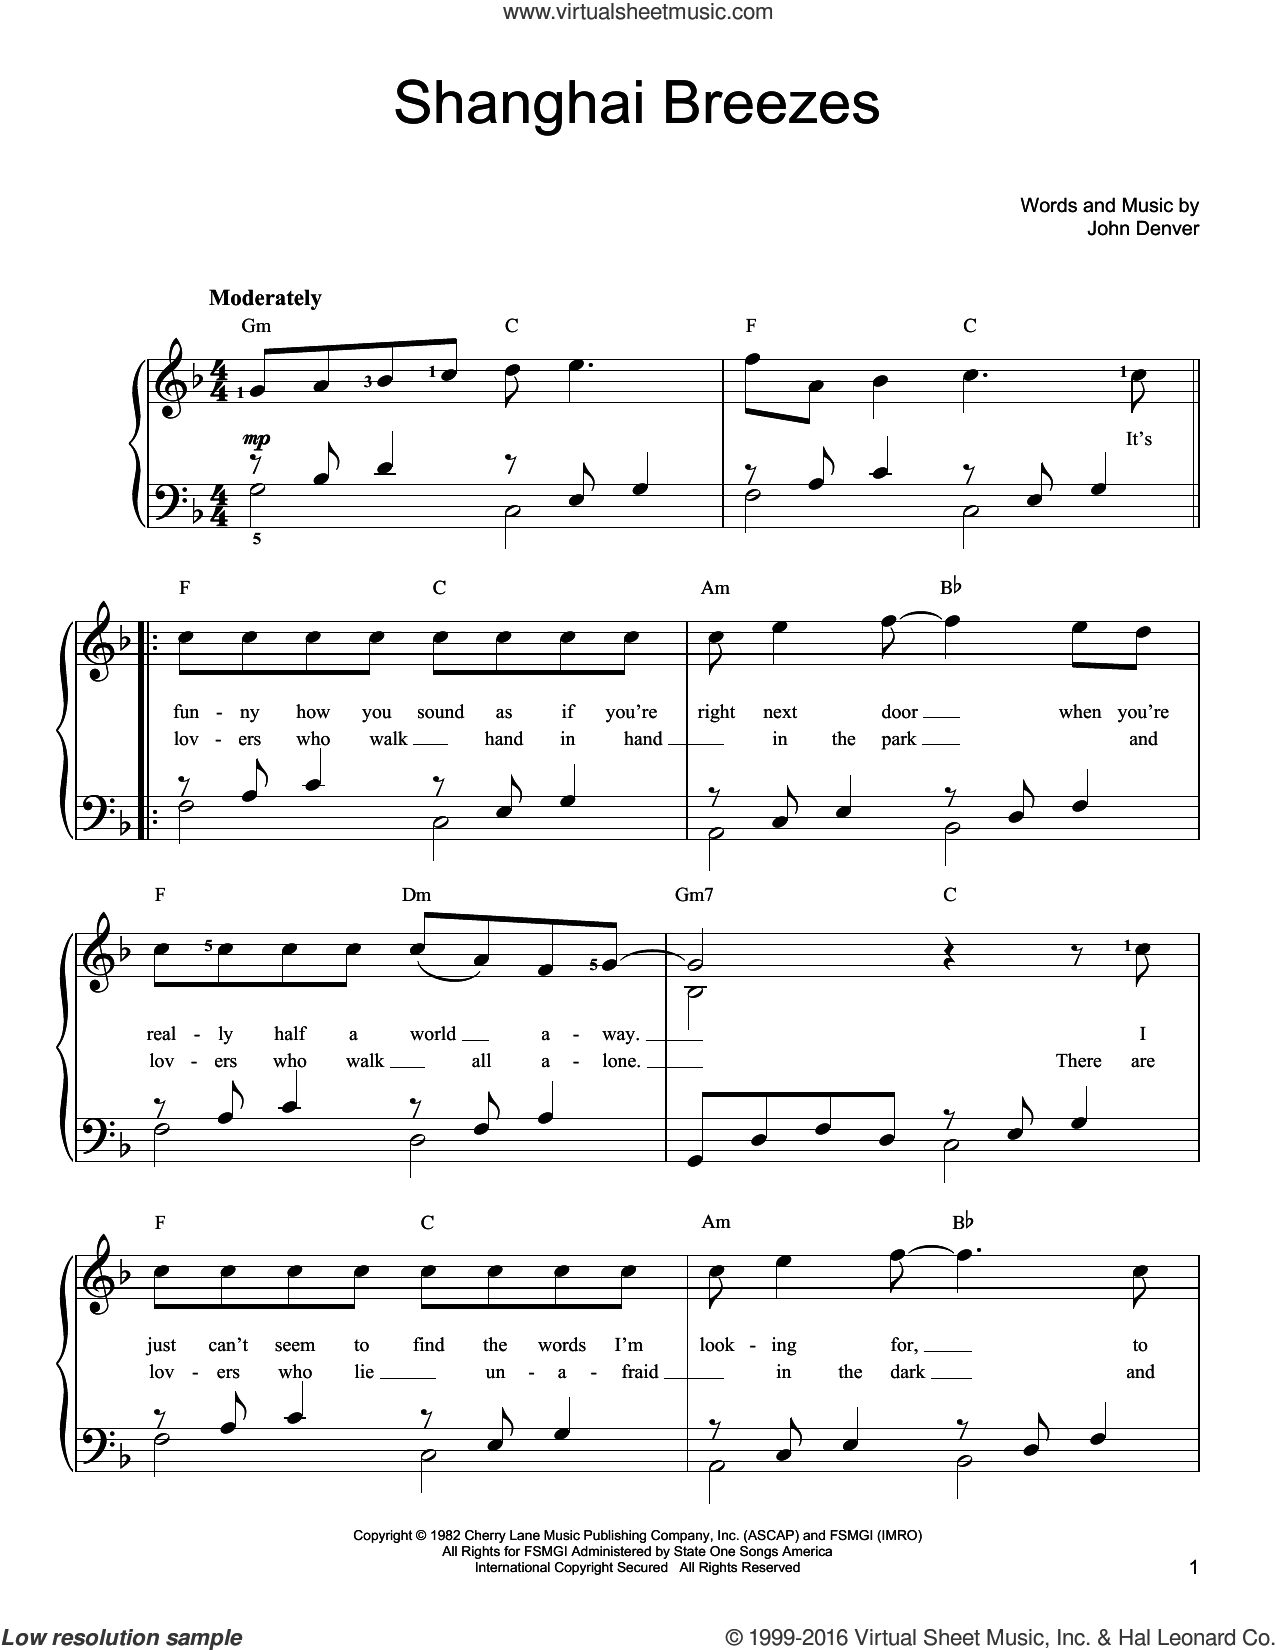 Shanghai Breezes sheet music for piano solo by John Denver. Score Image Preview.